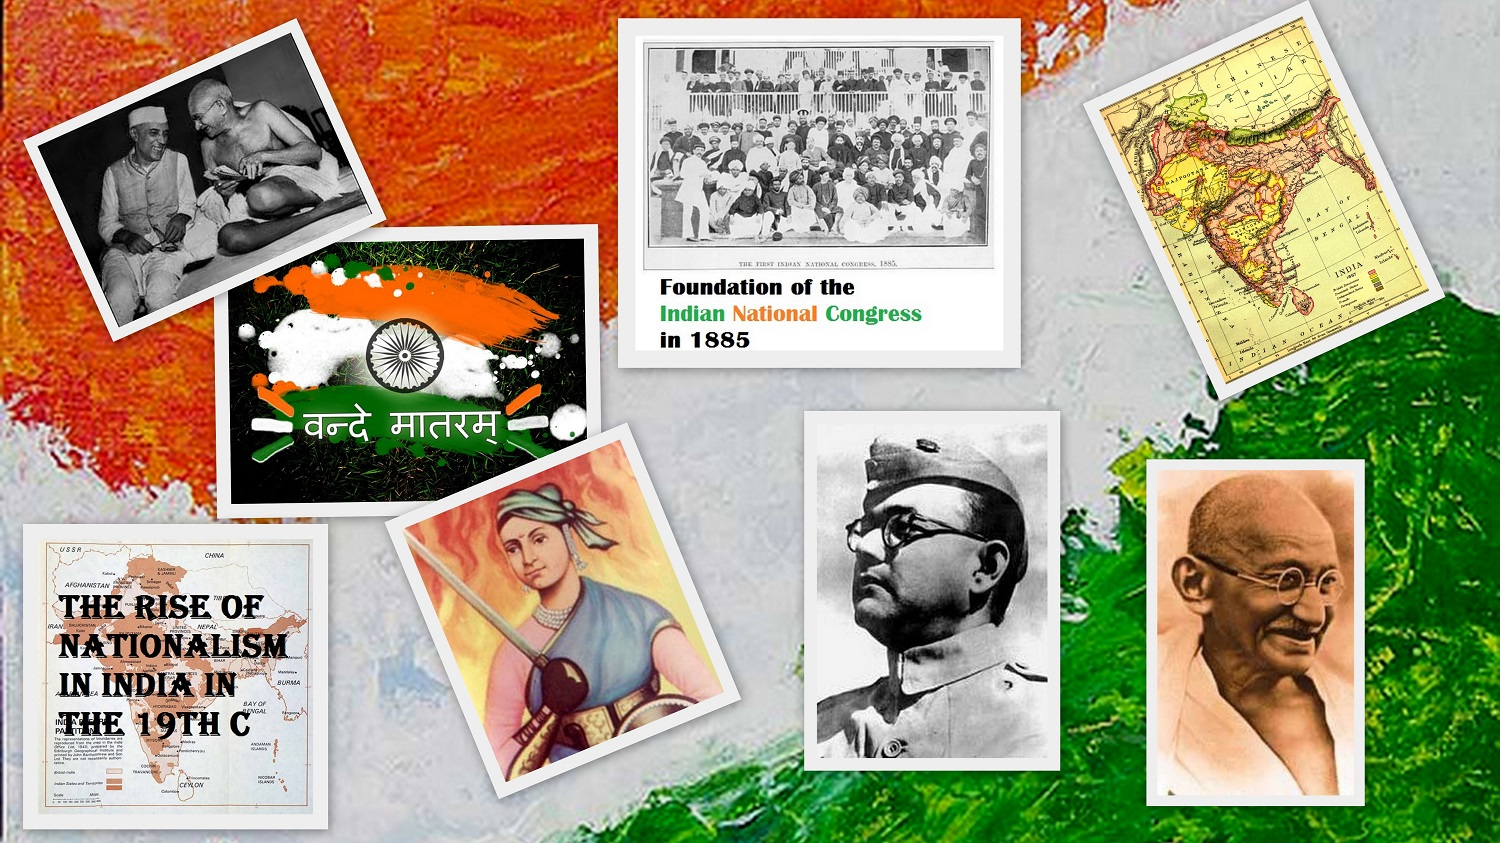 a history of the indian independence movement The indian independence movement was a movement from 1857 (in many cases, even pre-dating 1857) until august 15, 1947, when india got independence from the b.